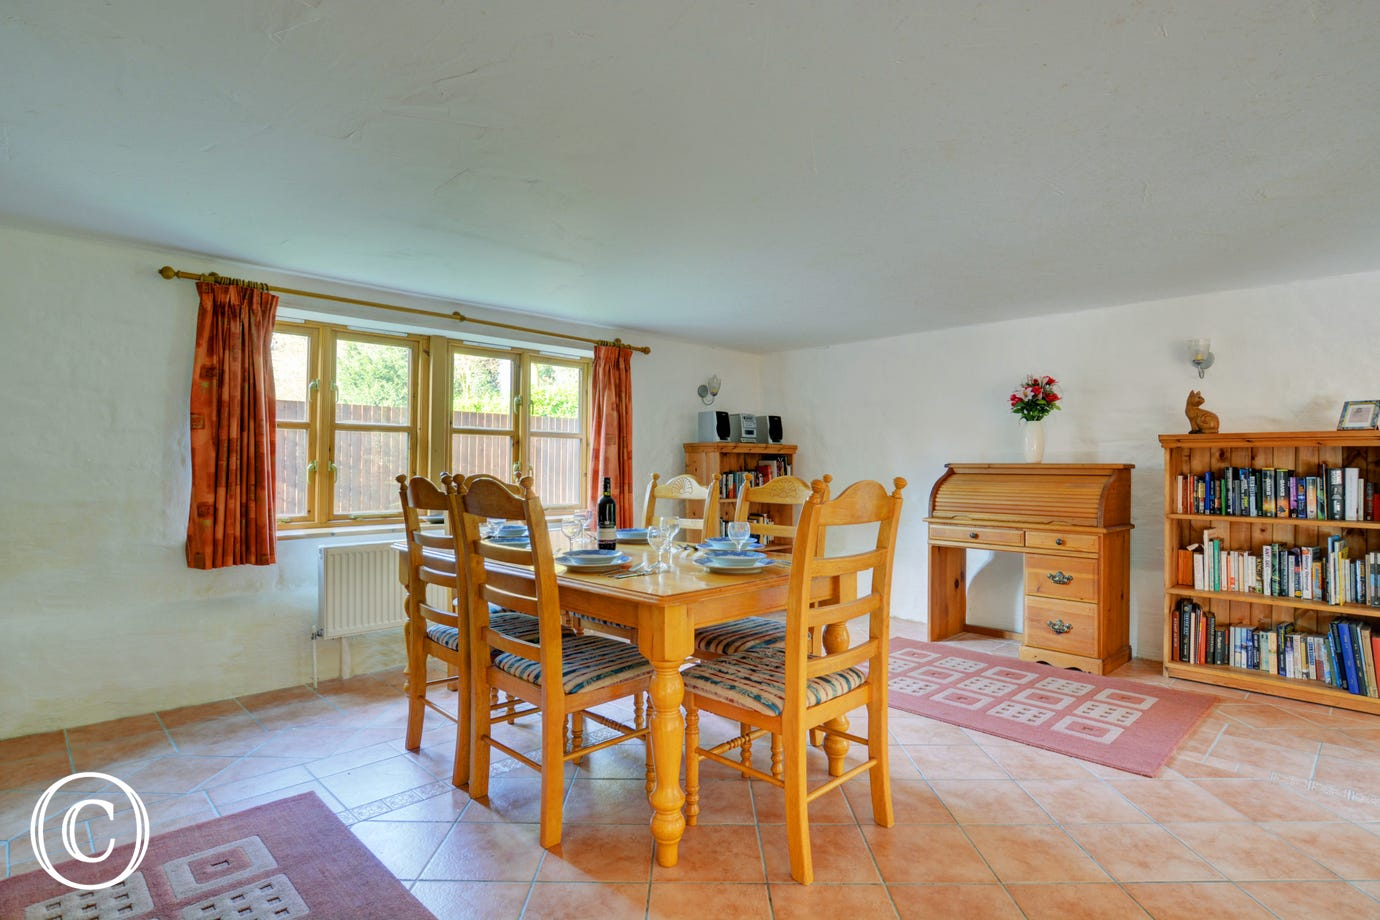 A pine table and six chairs stand in the centre of the large dining area, perfect for family meals